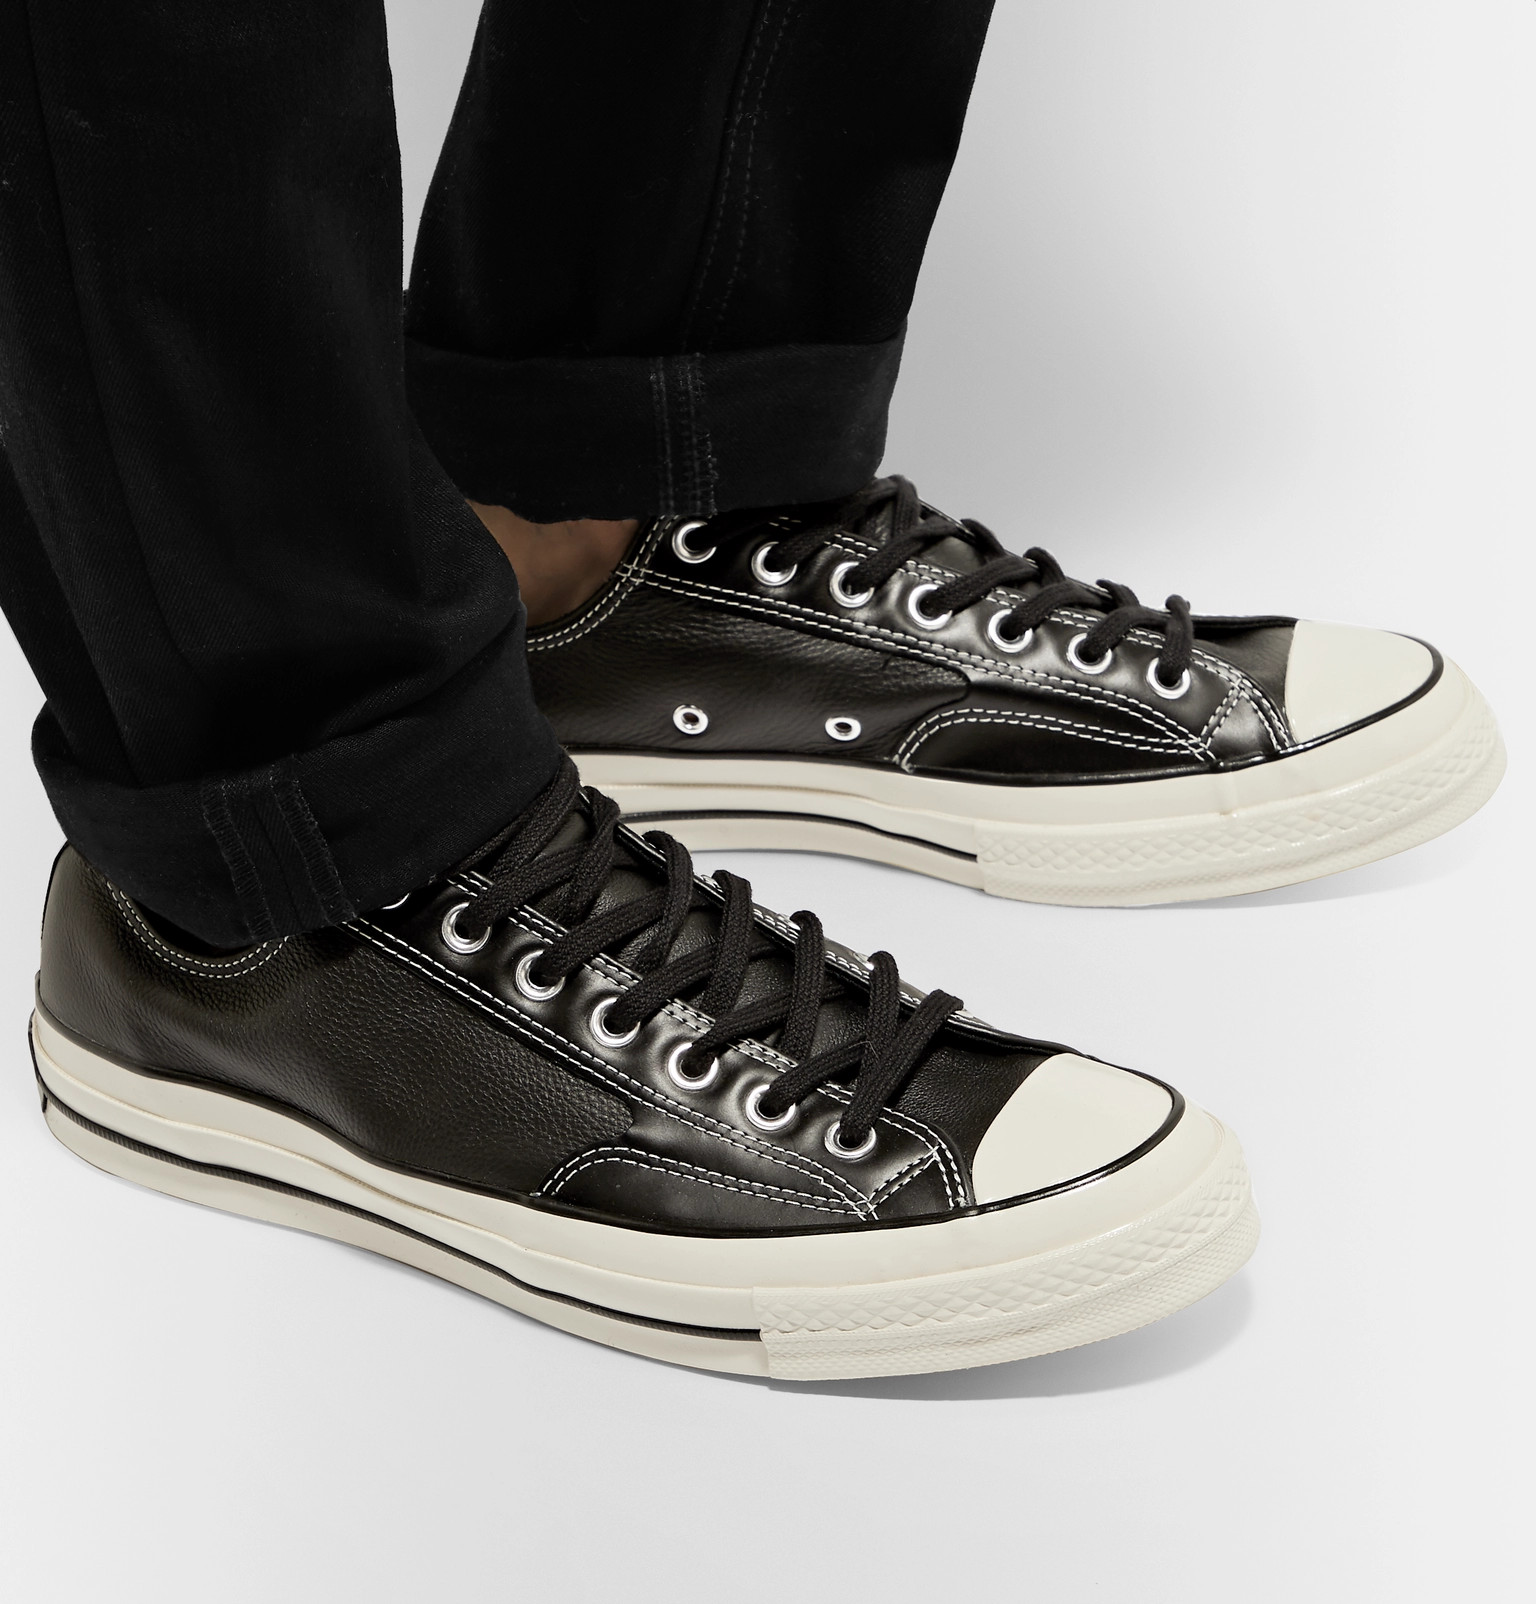 a8c90a37fe3 Converse - 1970s Chuck Taylor All Star Full-Grain Leather Sneakers